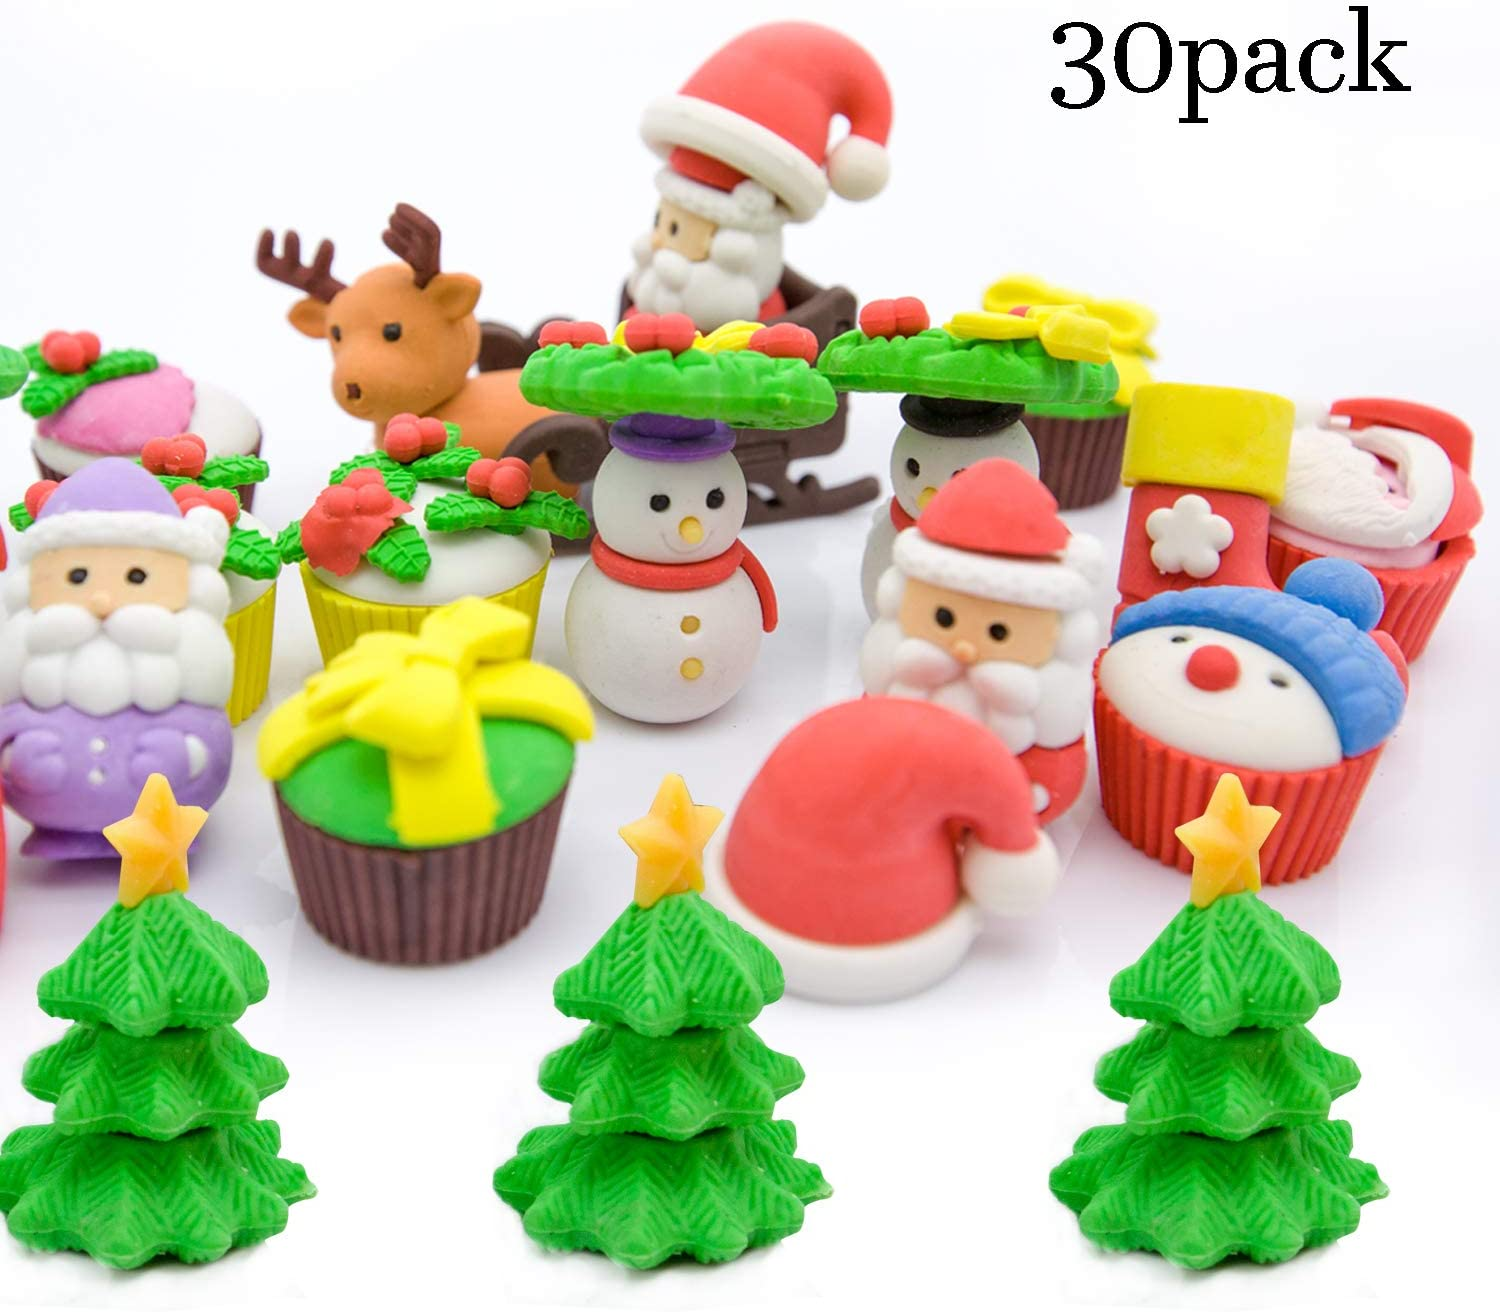 LanMa 30Pack Christmas Erasers Christmas Puzzle Erasers Perfect for Party Favors, Stocking Fillers,Kids Christmas